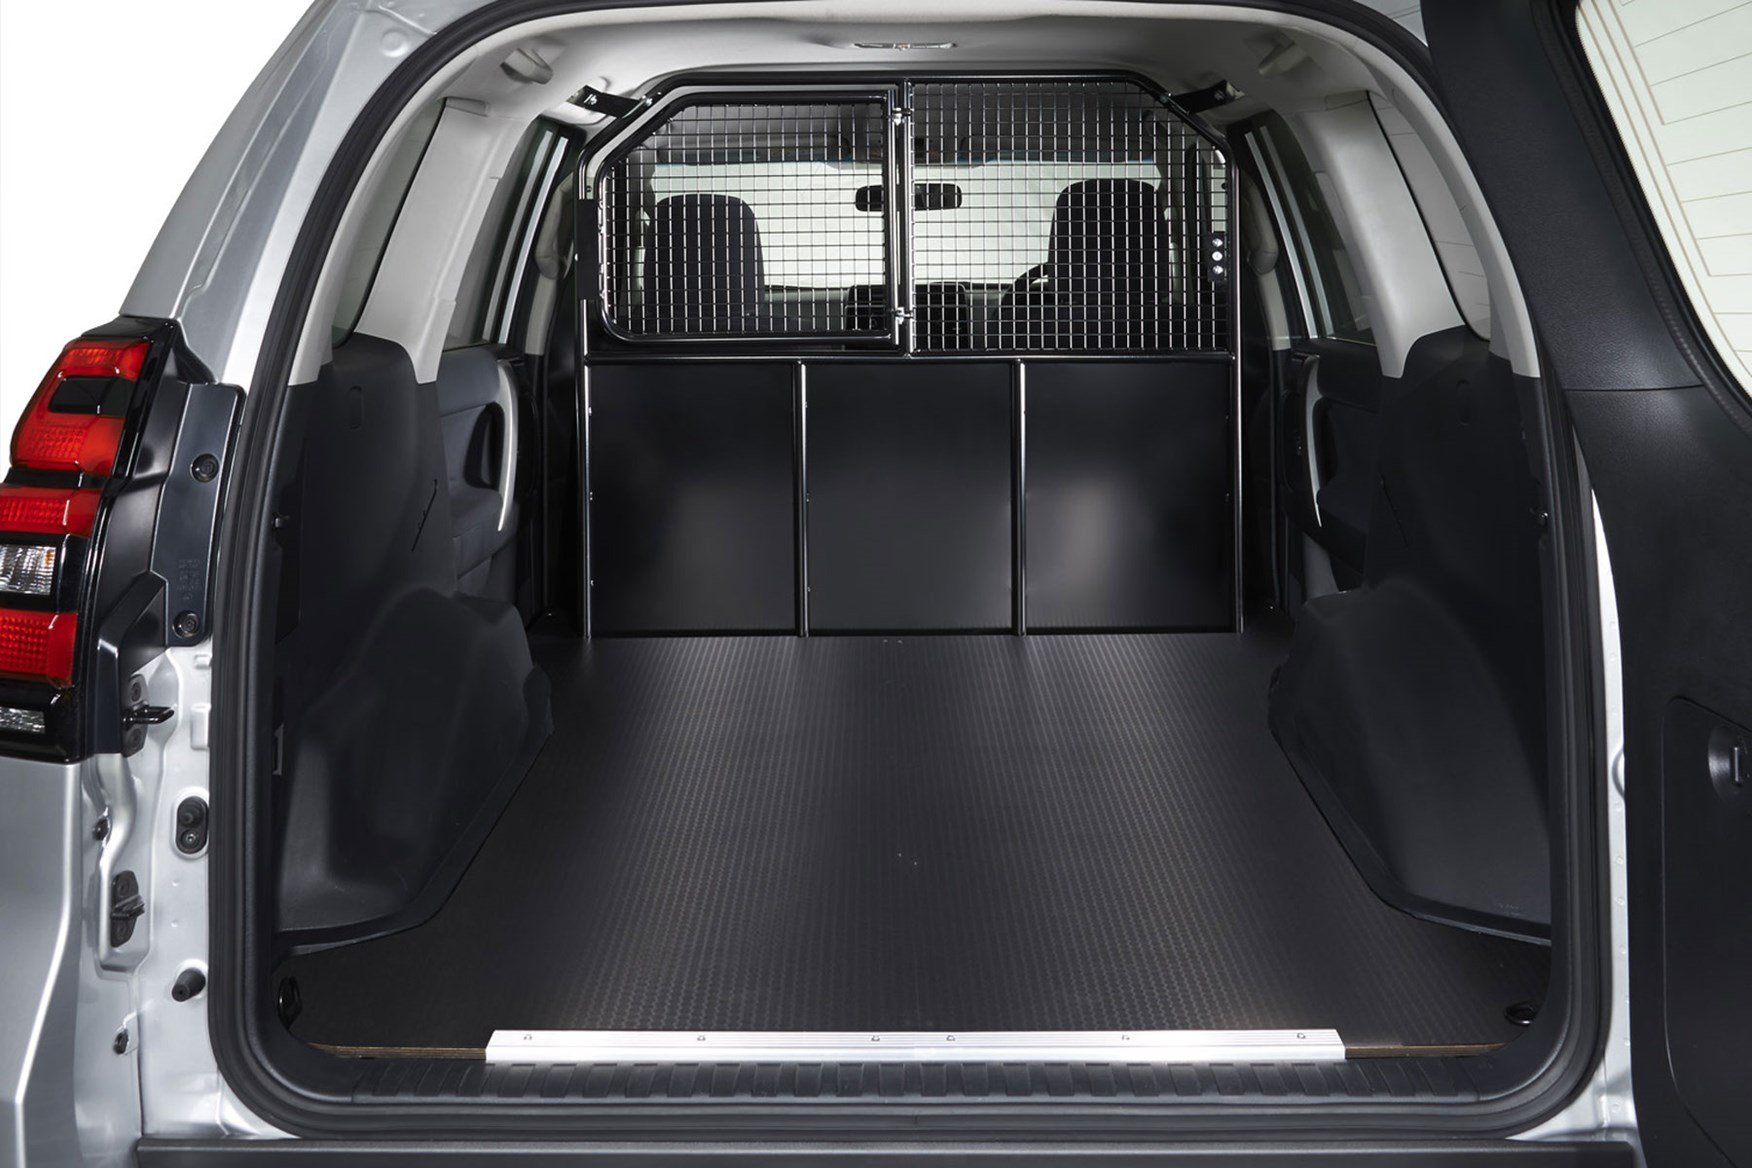 Toyota Land Cruiser Commercial dimensions - load area